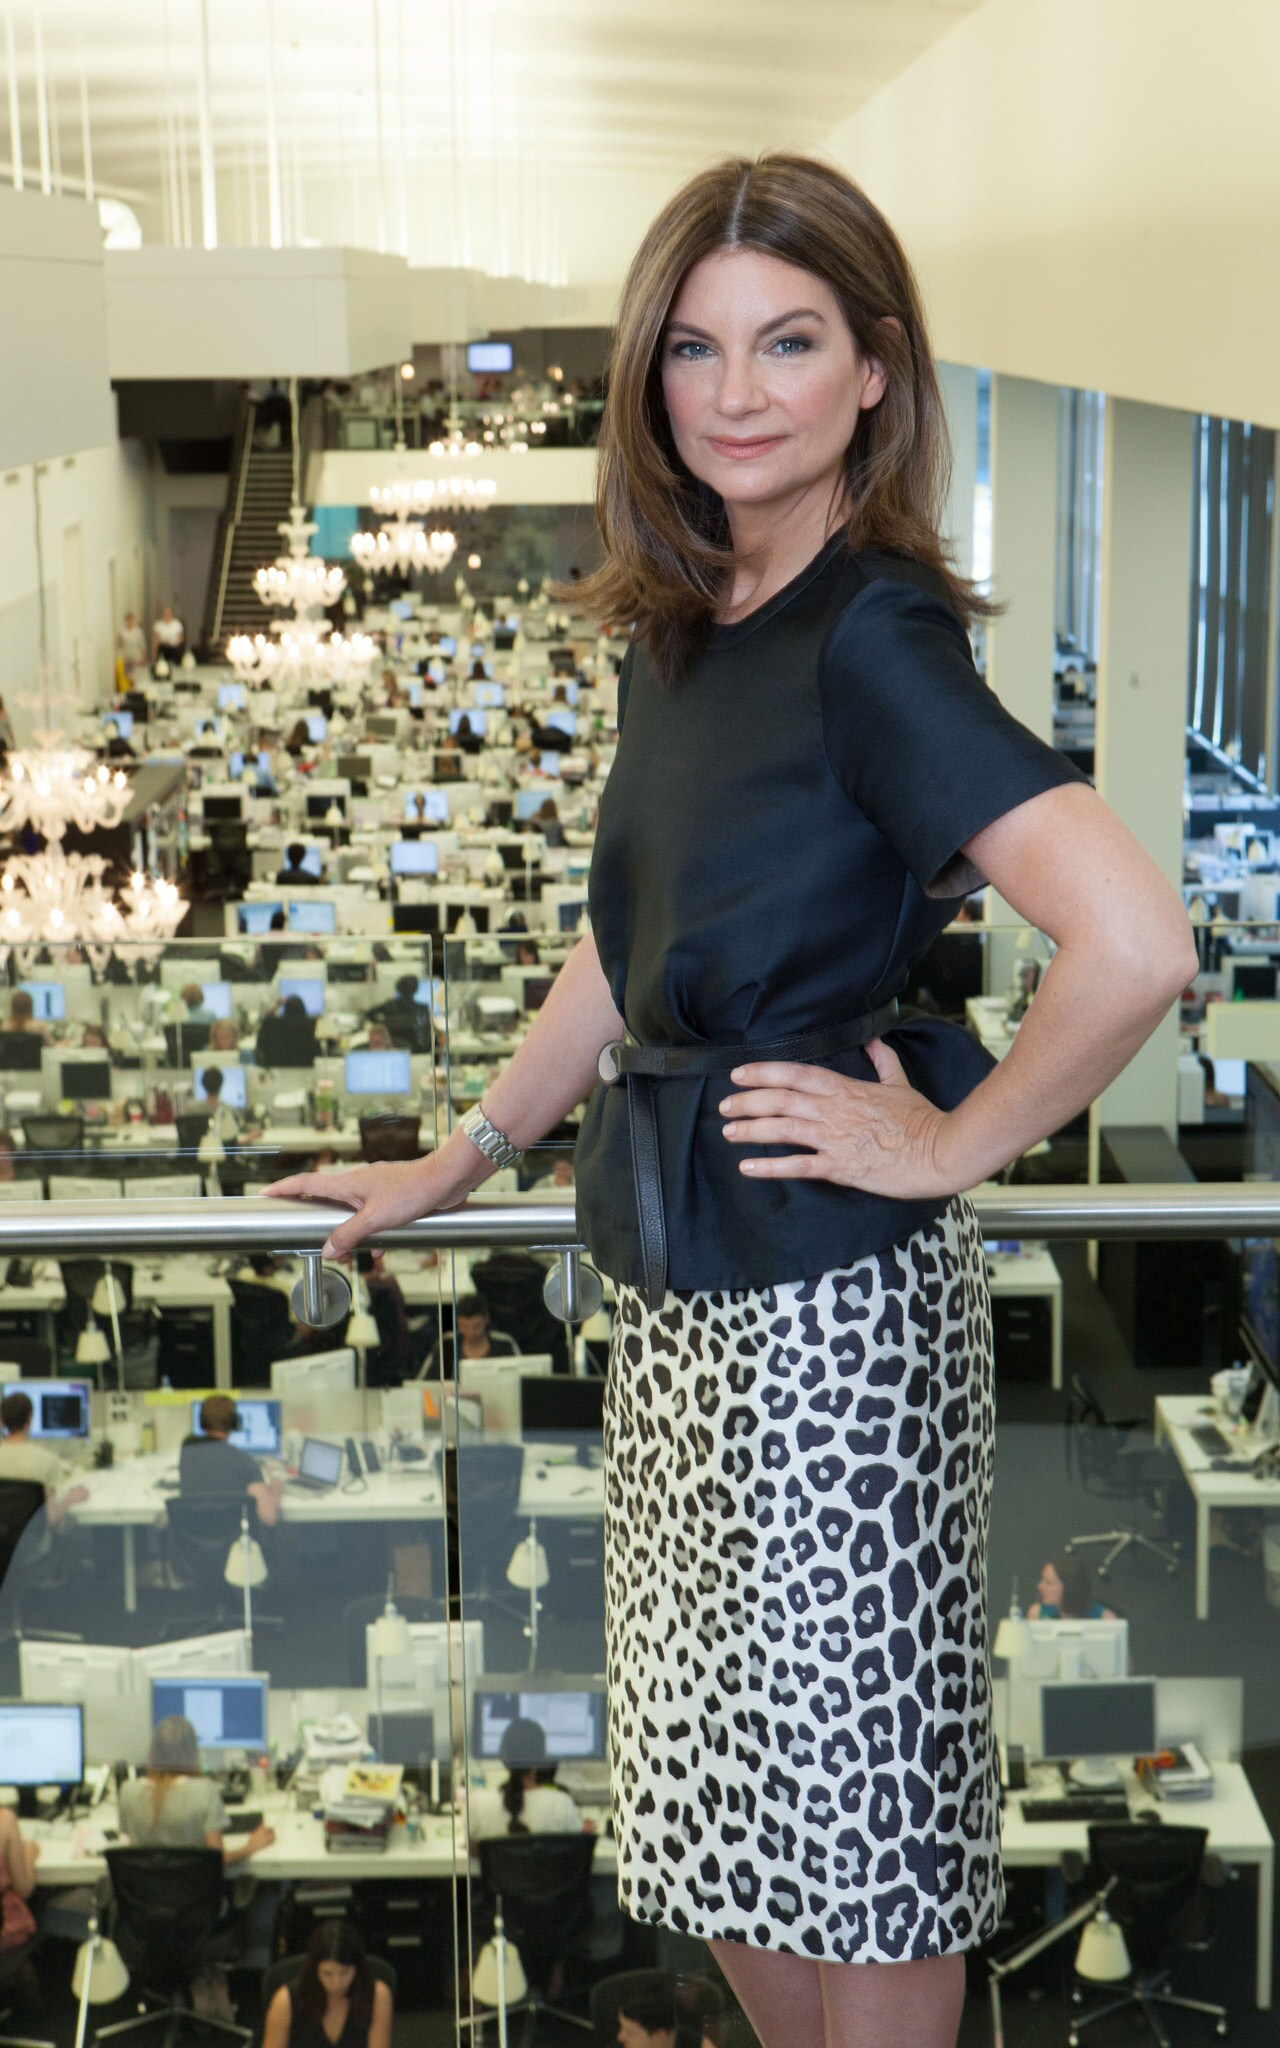 Le Meilleur Natalie Massenet S Inspiring Parting Email To Her Staff Ce Mois Ci